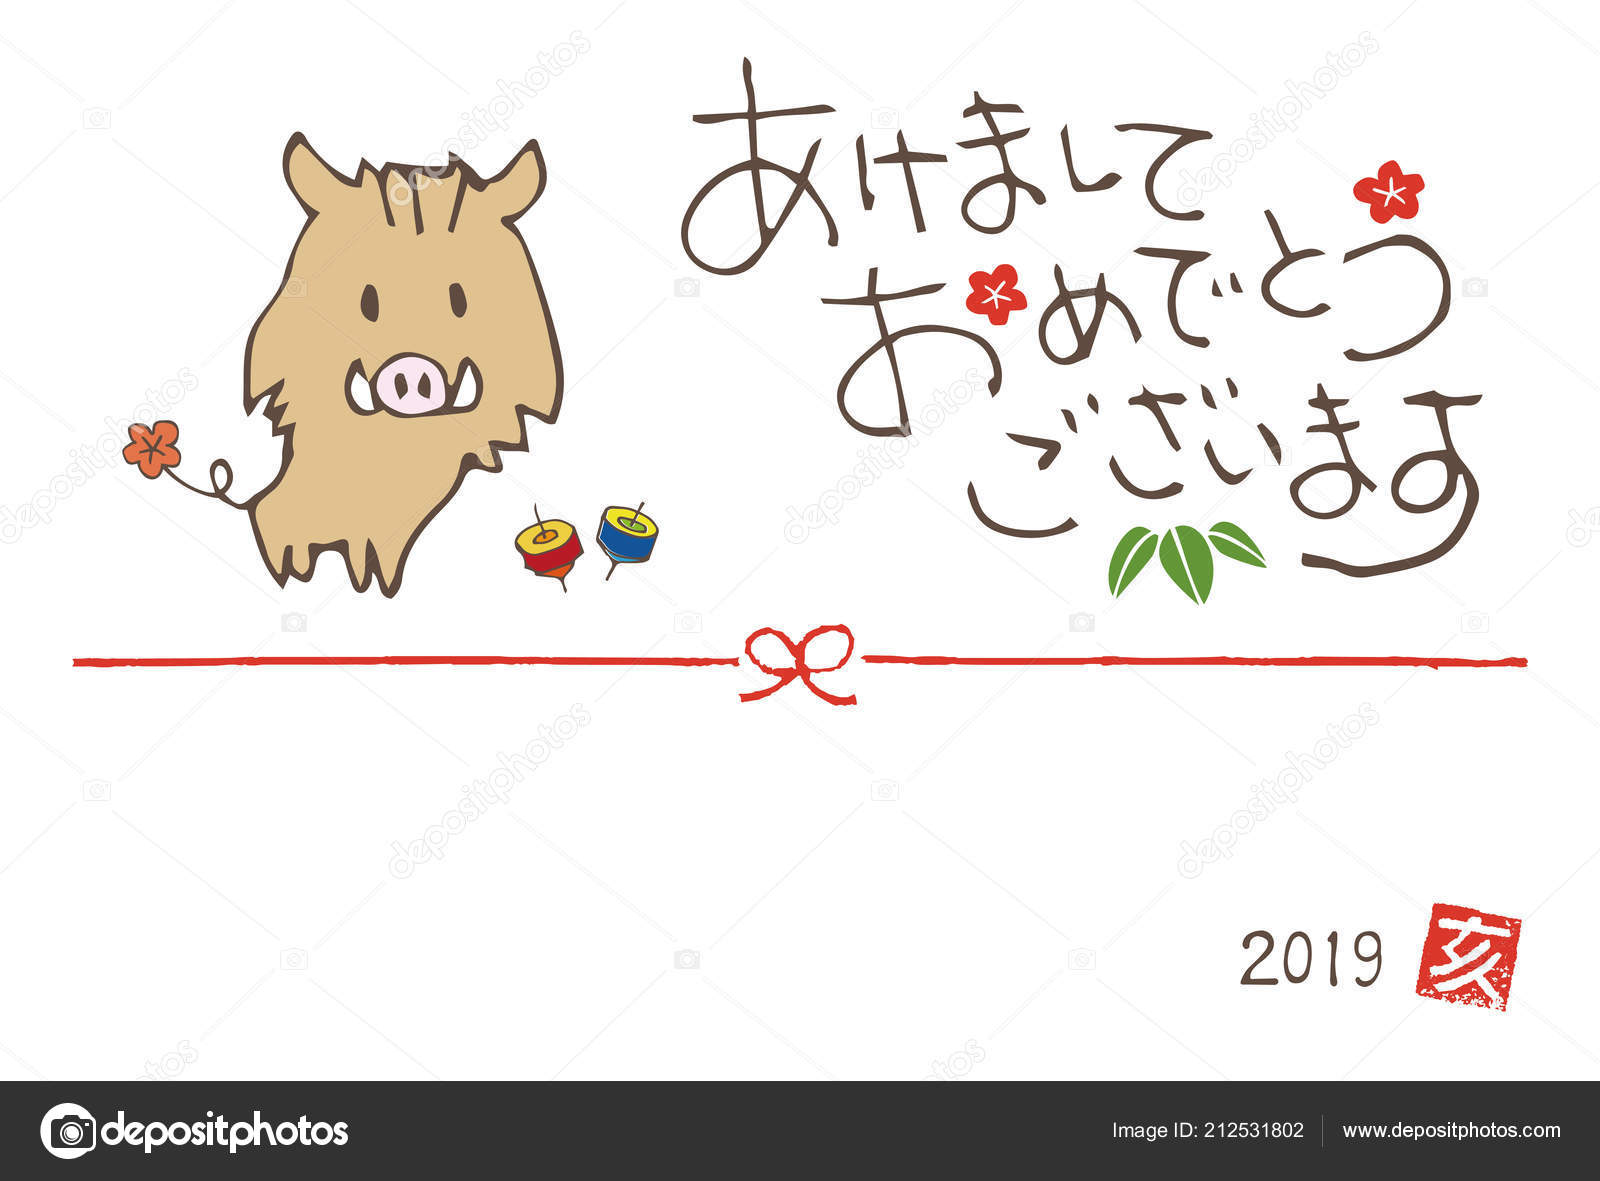 New Year Greeting Card Cute Boar Wild Pig Year 2019 Stock Vector